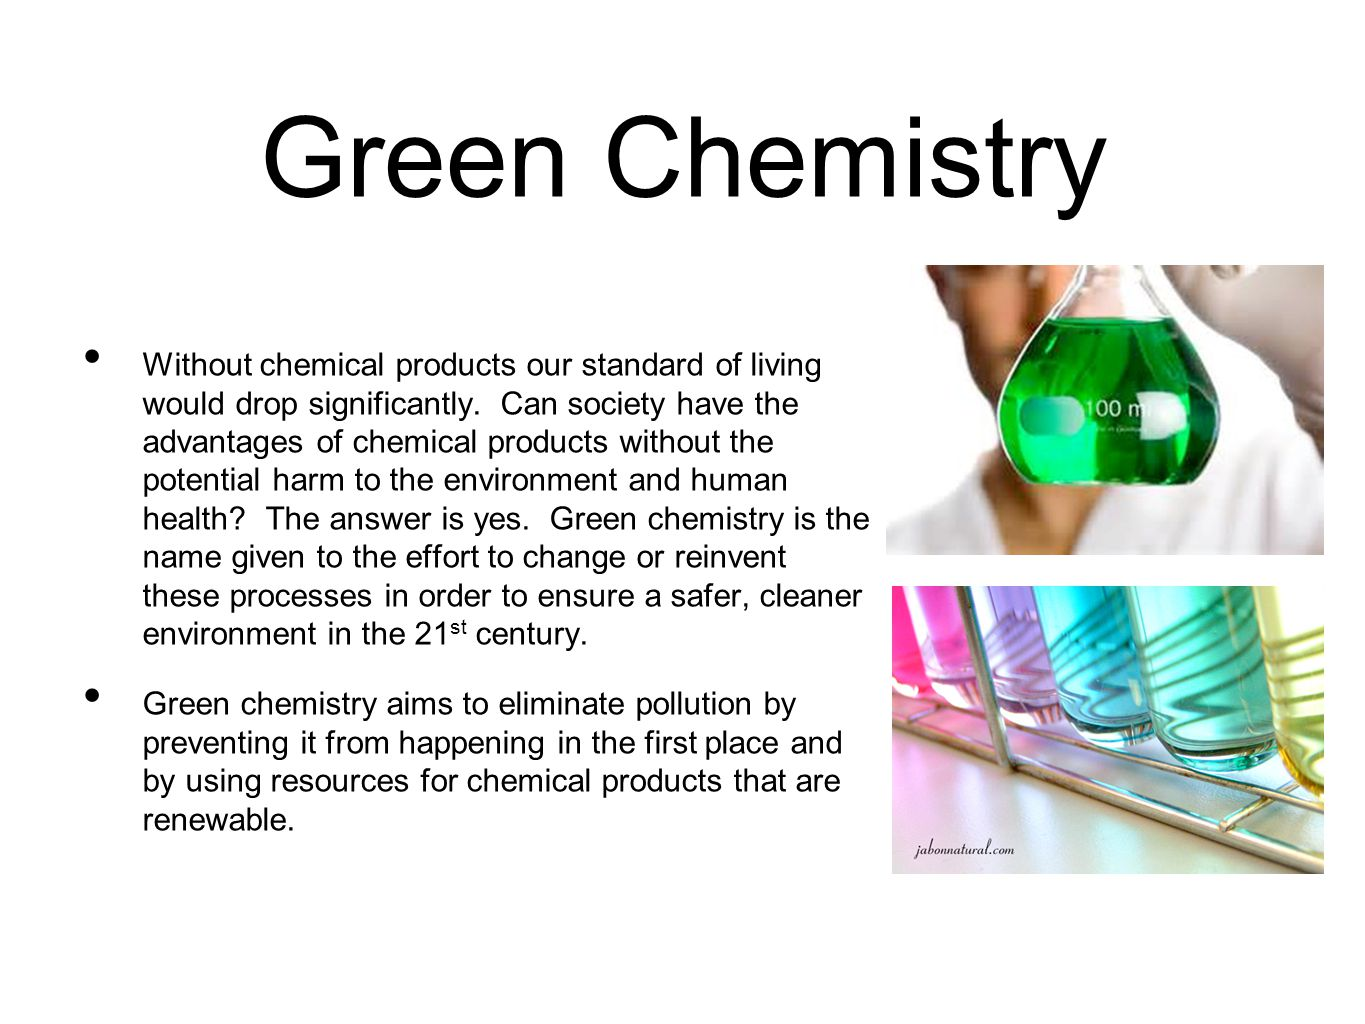 Without chemical products our standard of living would drop significantly. Can society have the advantages of chemical products without the potential